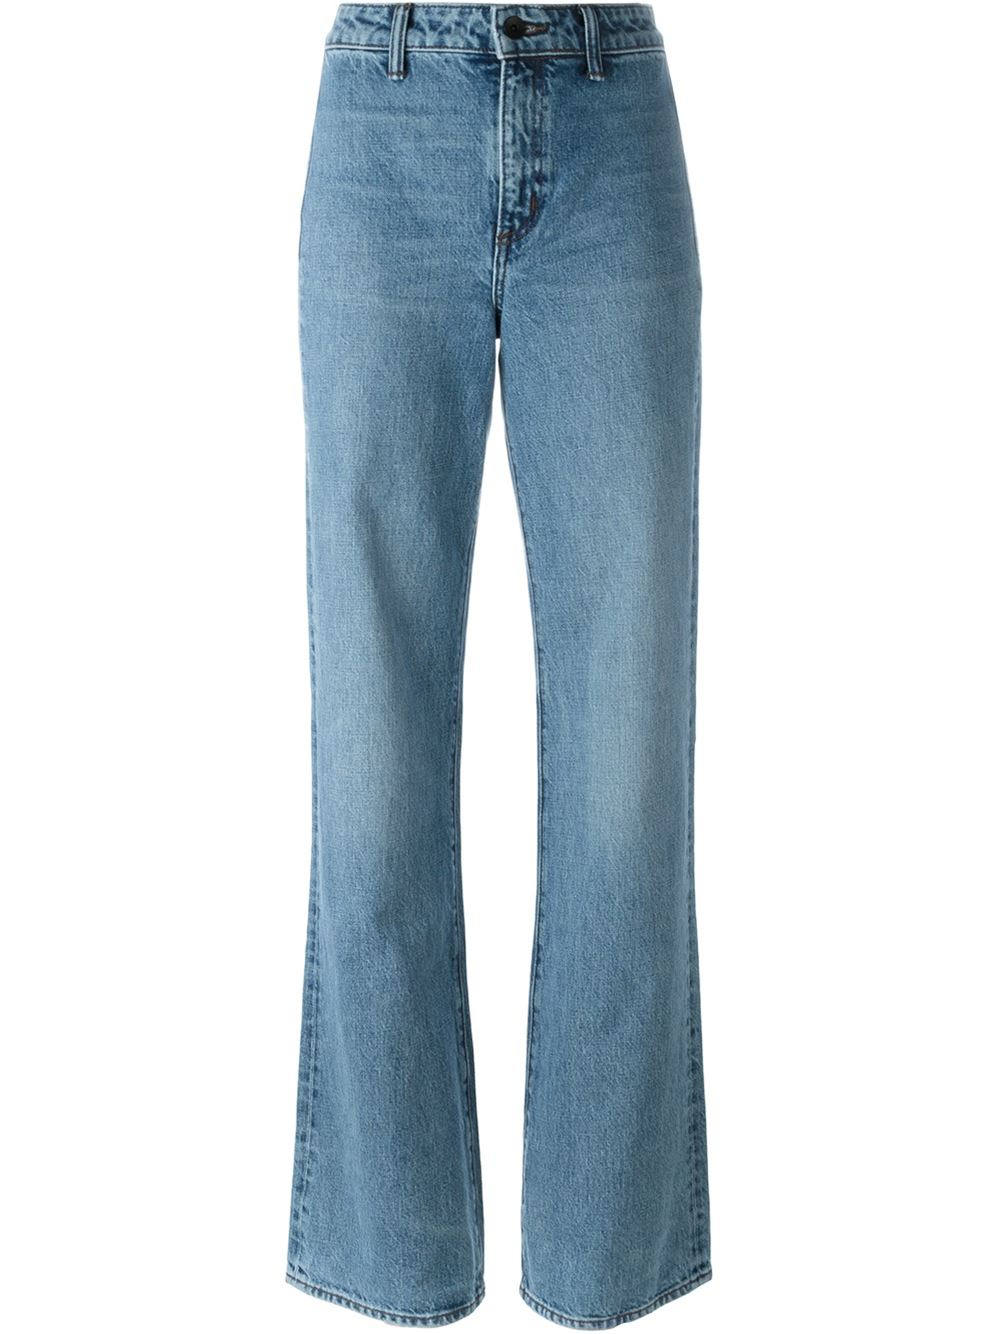 Helmut Lang High Rise Jeans